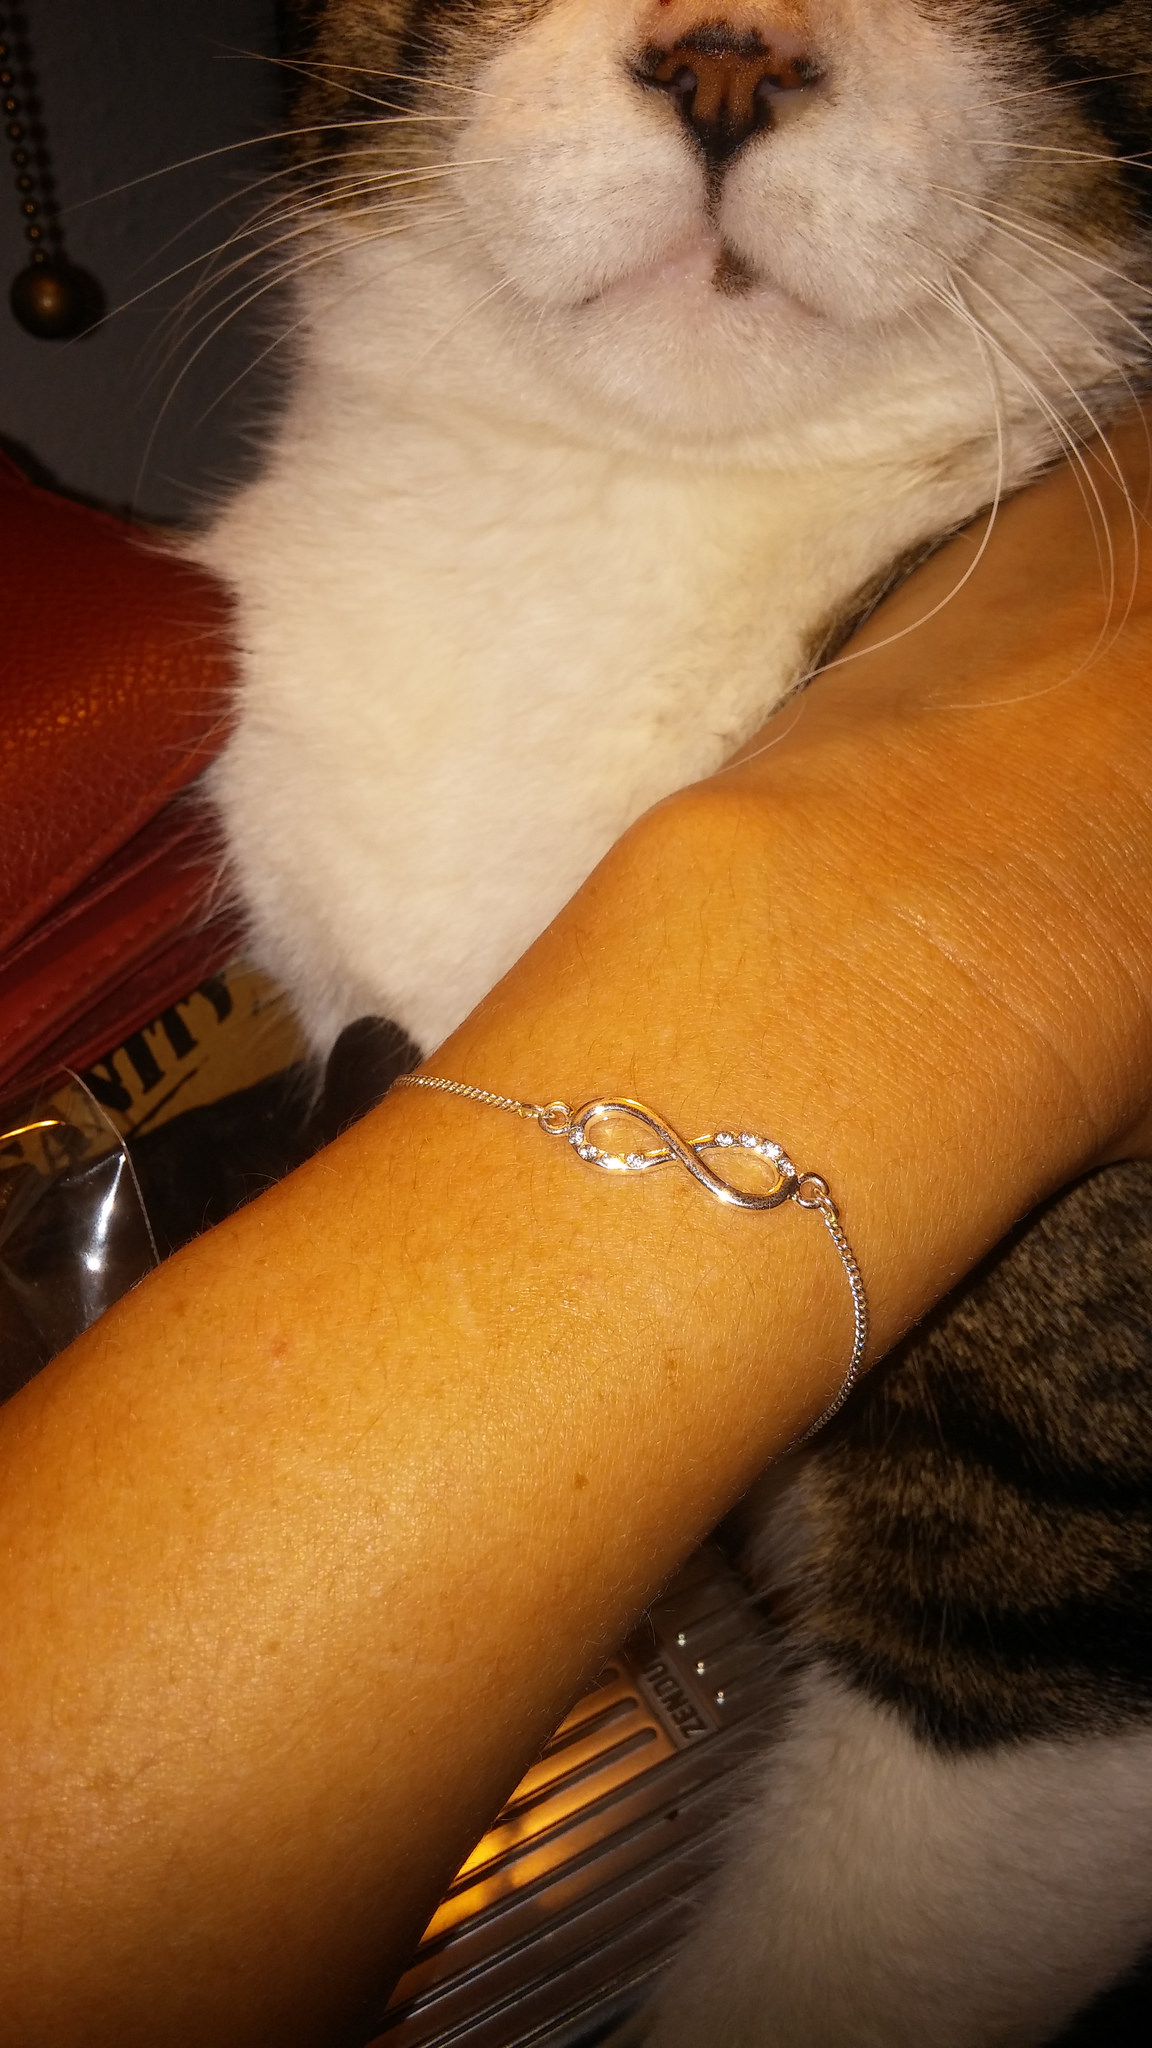 The reminder bracelet and Ed's cute little snout.